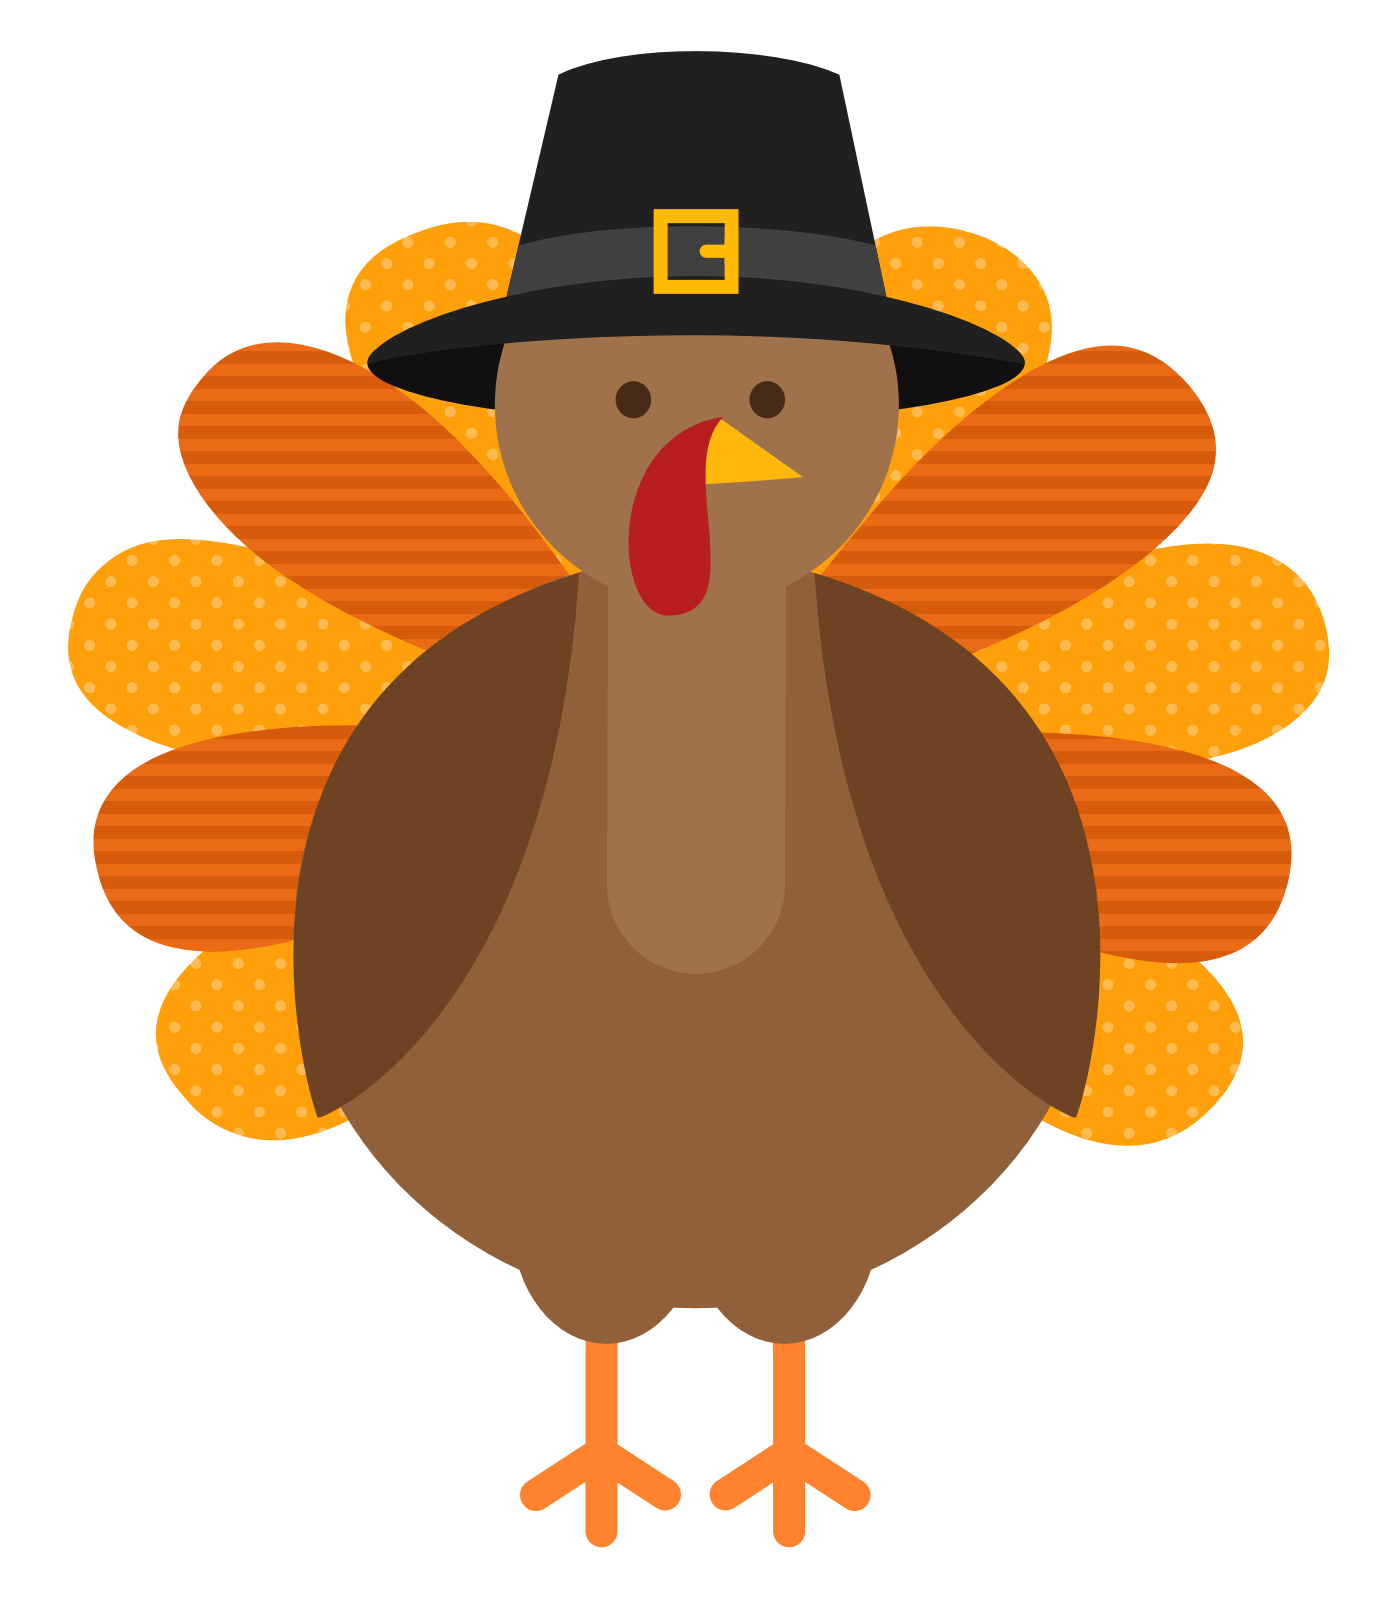 2017 clipart thanksgiving. Dinner rainbow trail lutheran